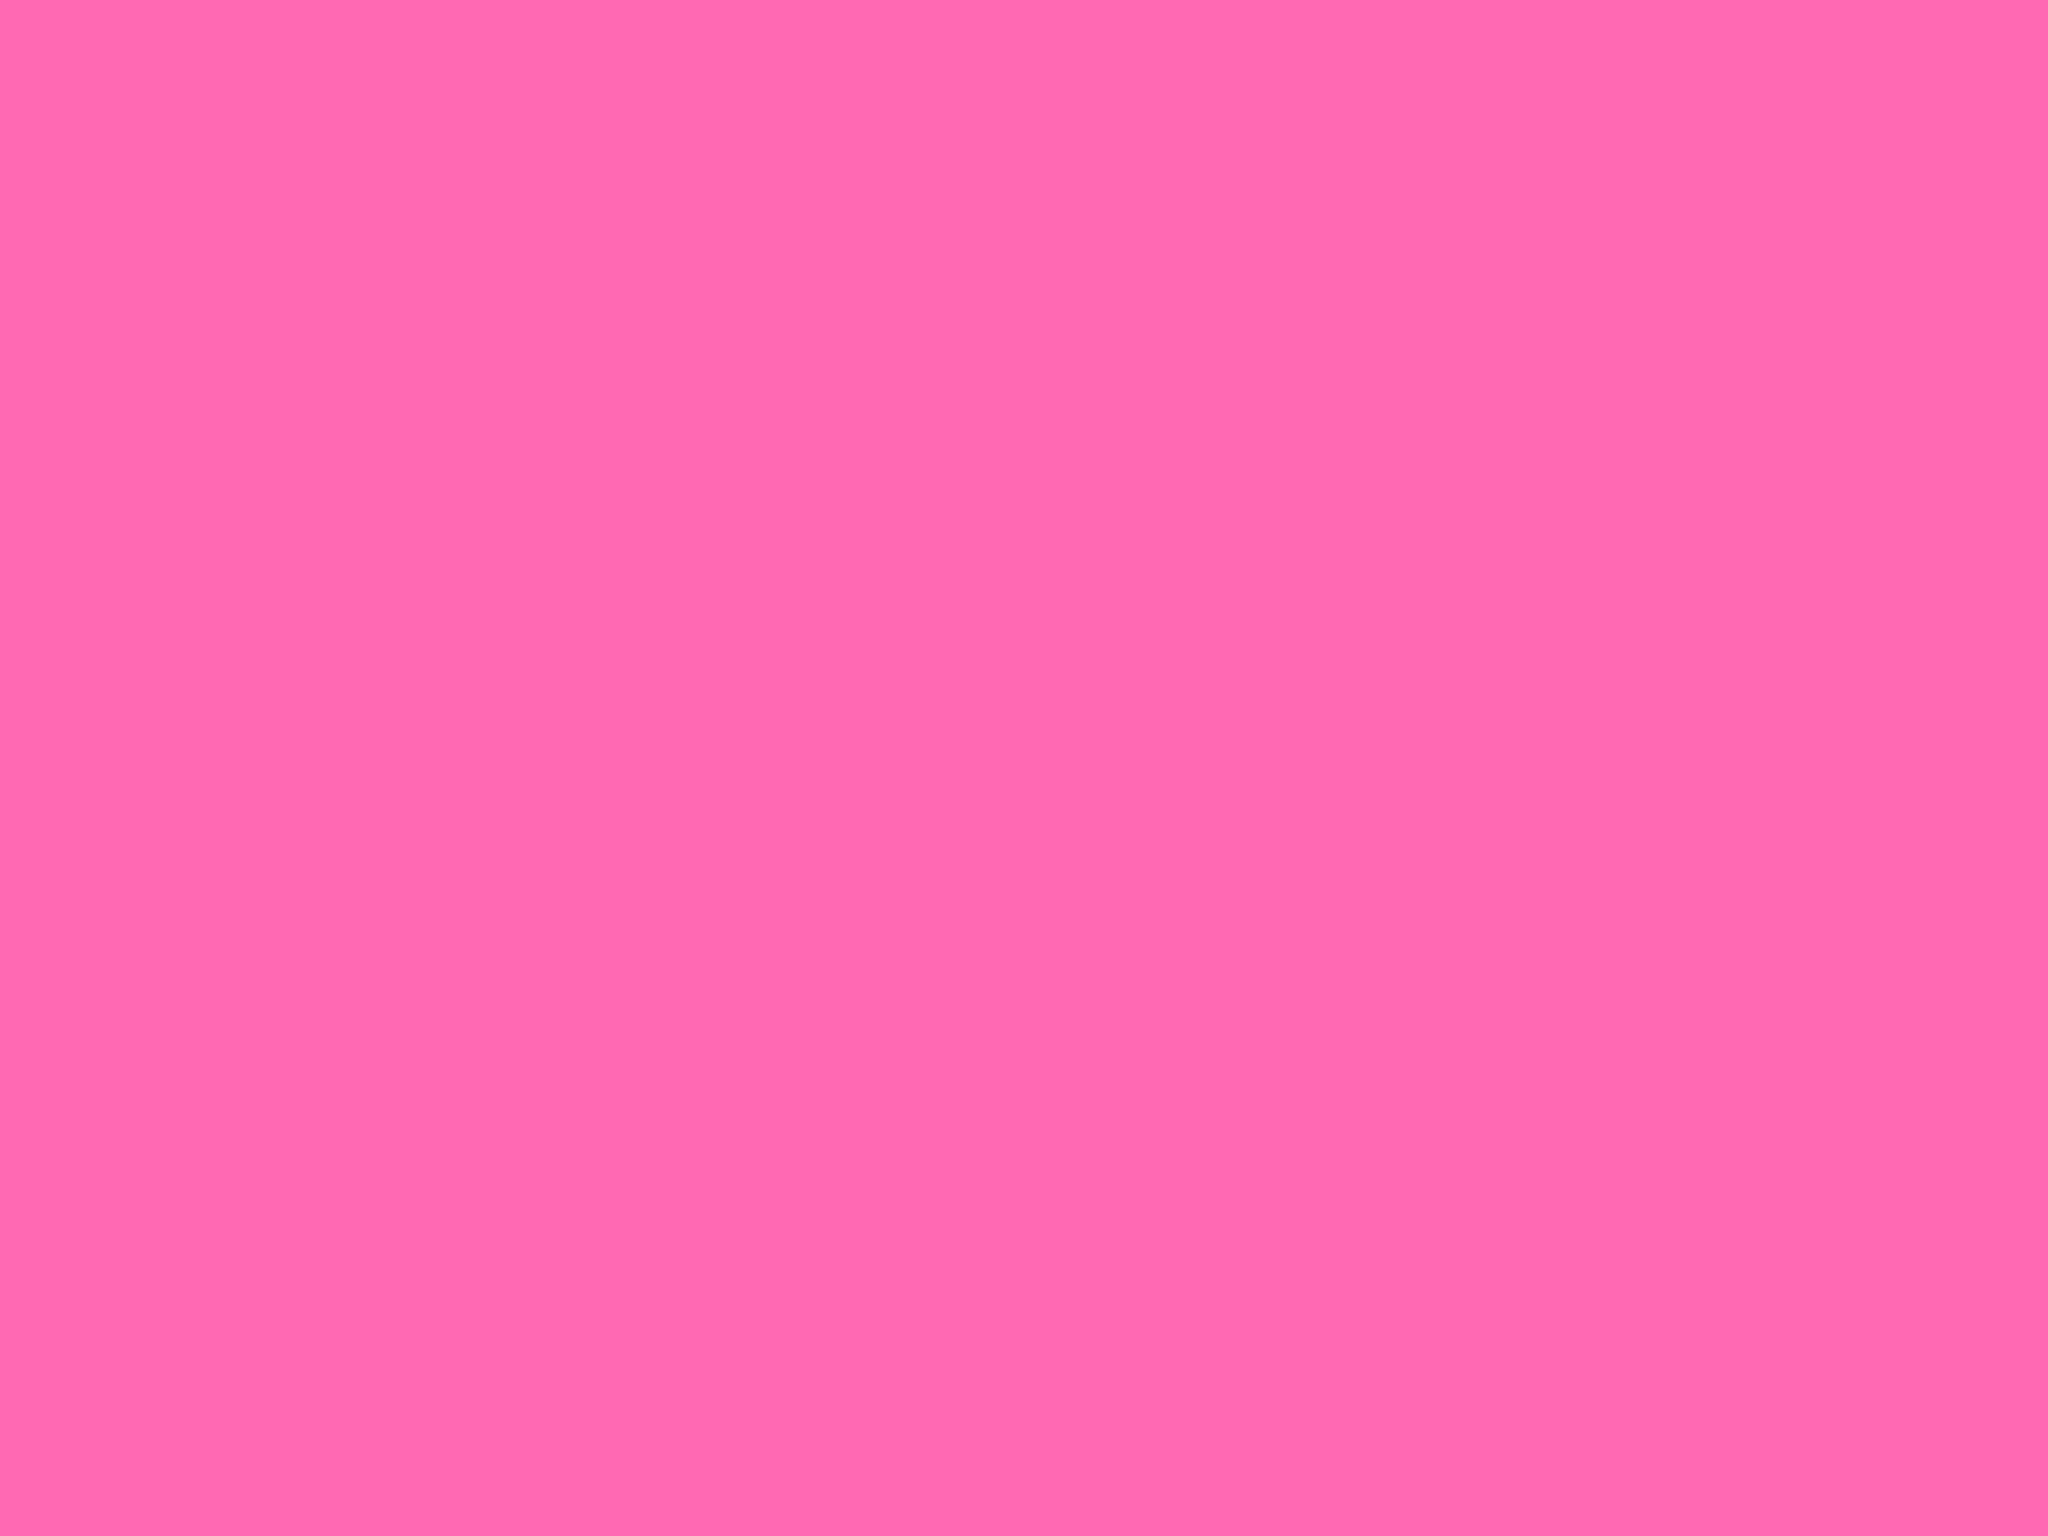 2048x1536 Hot Pink Solid Color Background